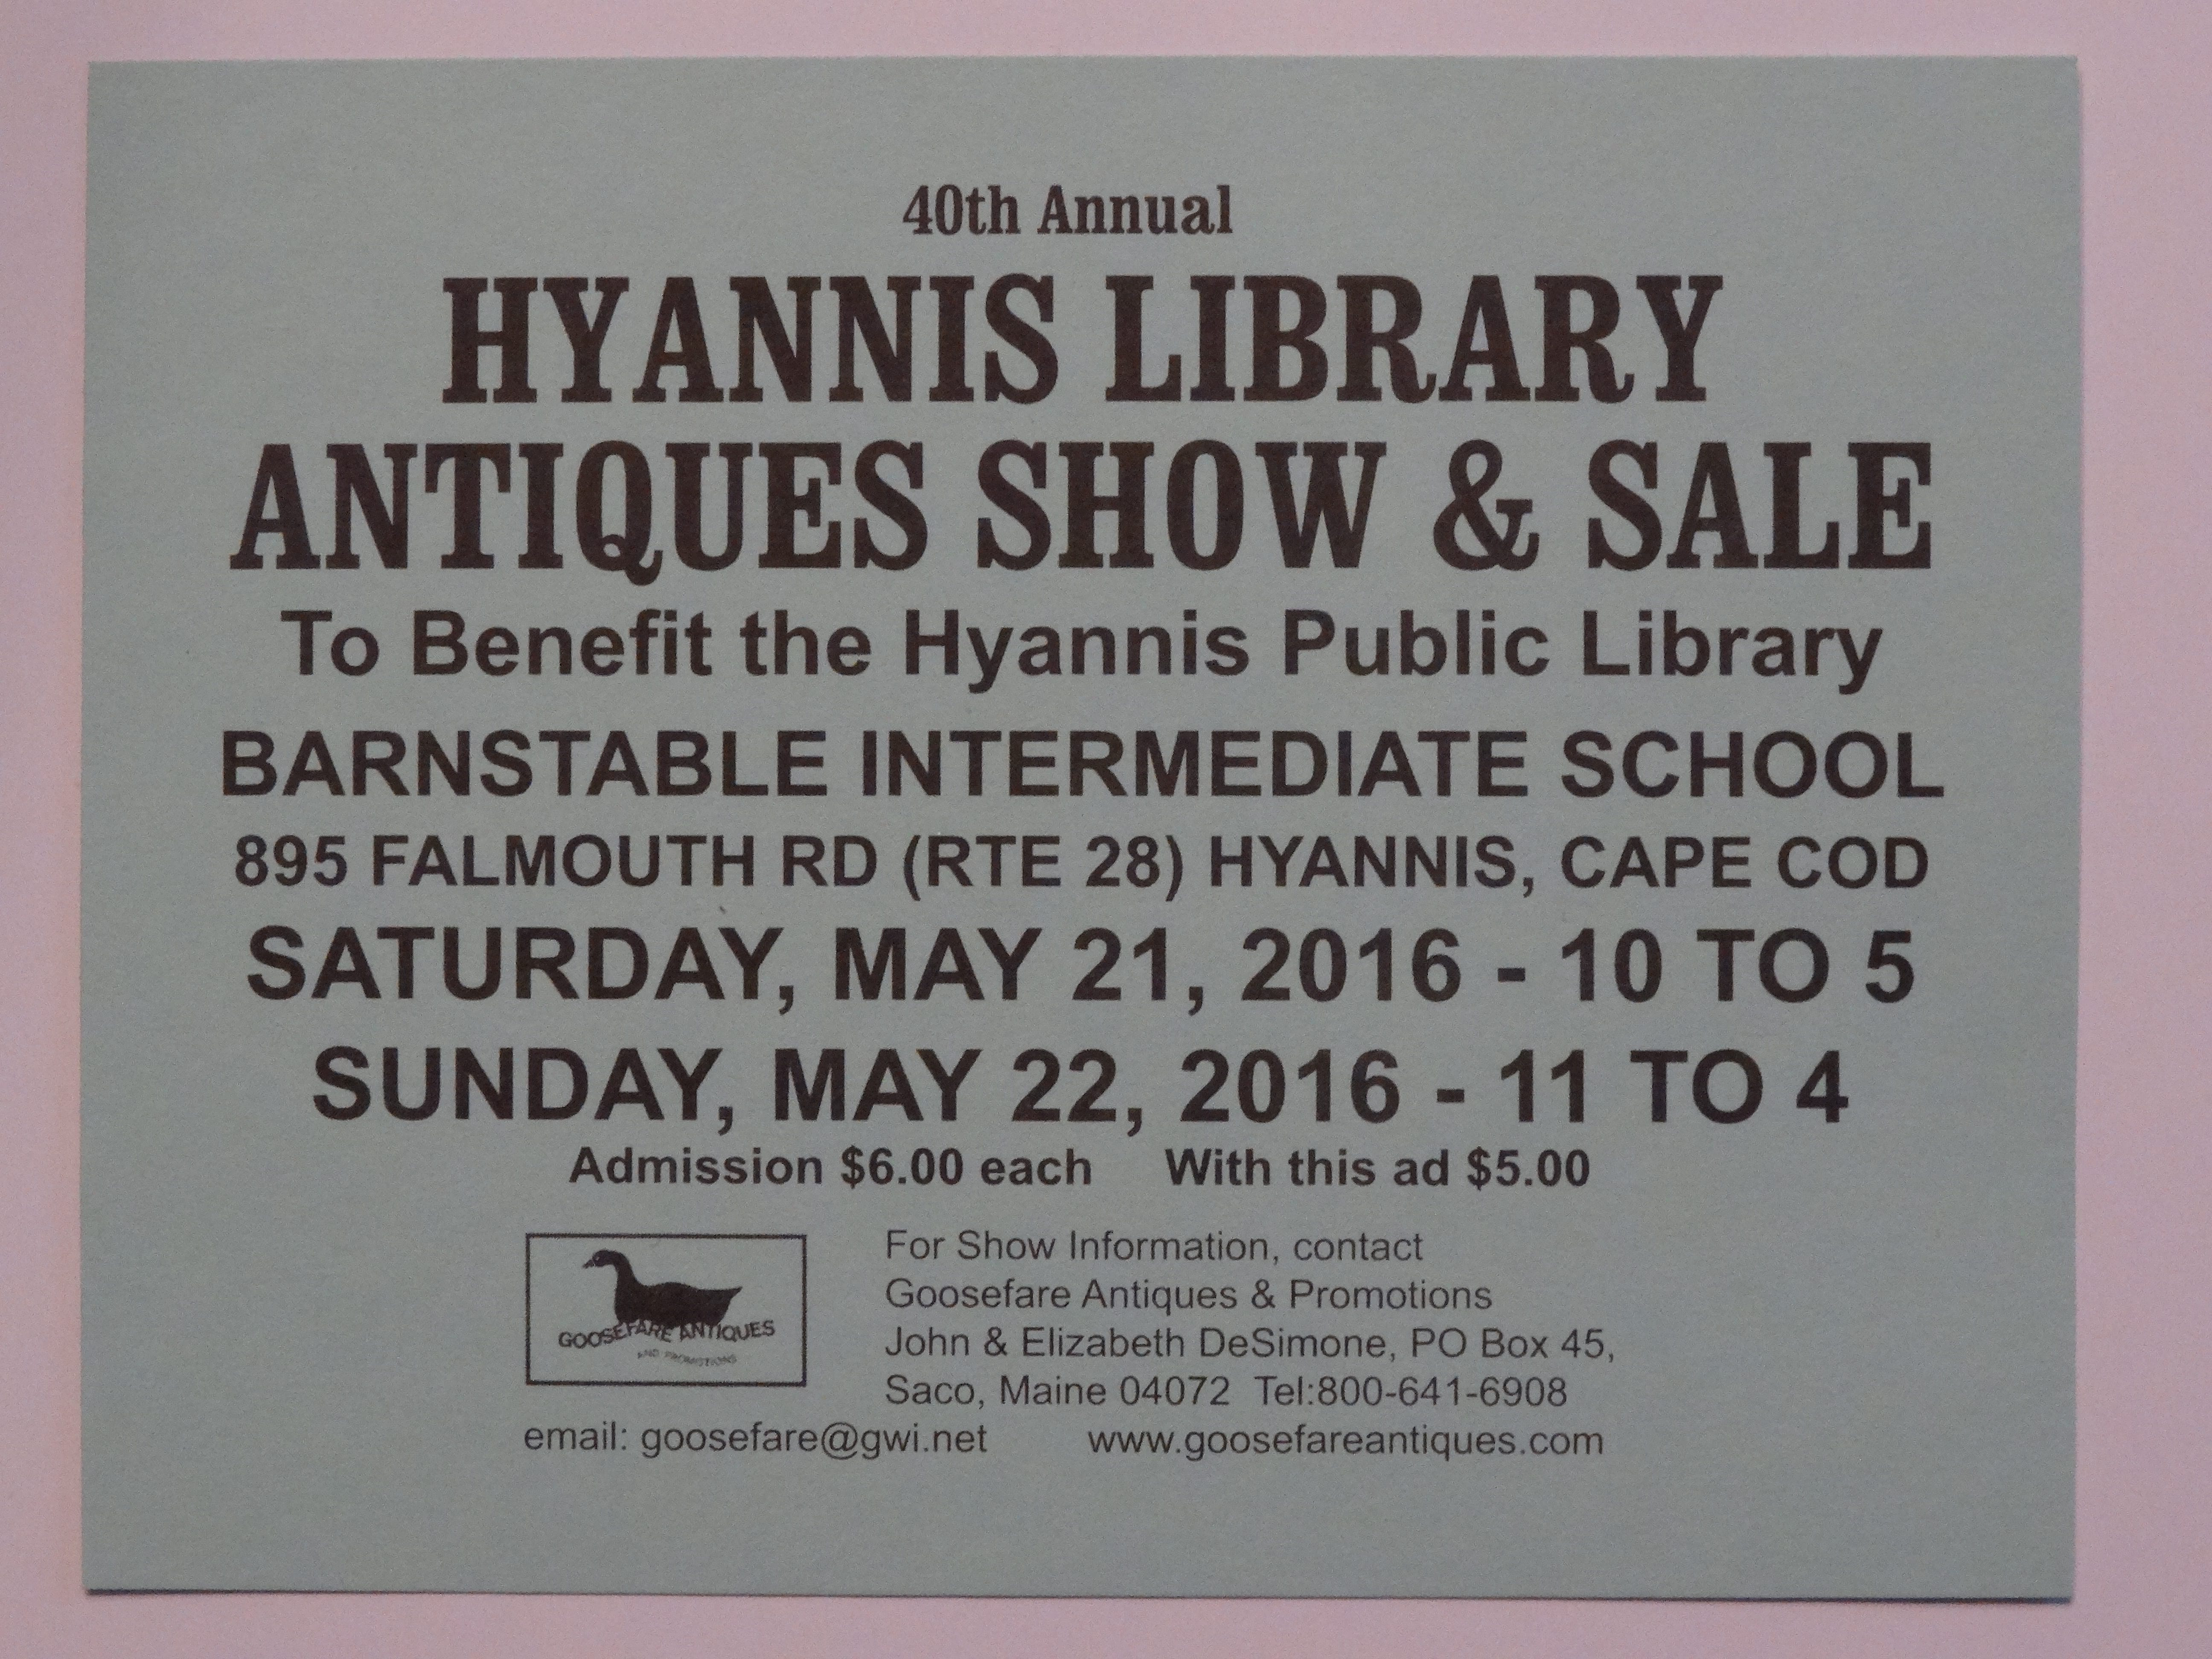 Cape Cod Antiques Show May 21 & 22, 2016